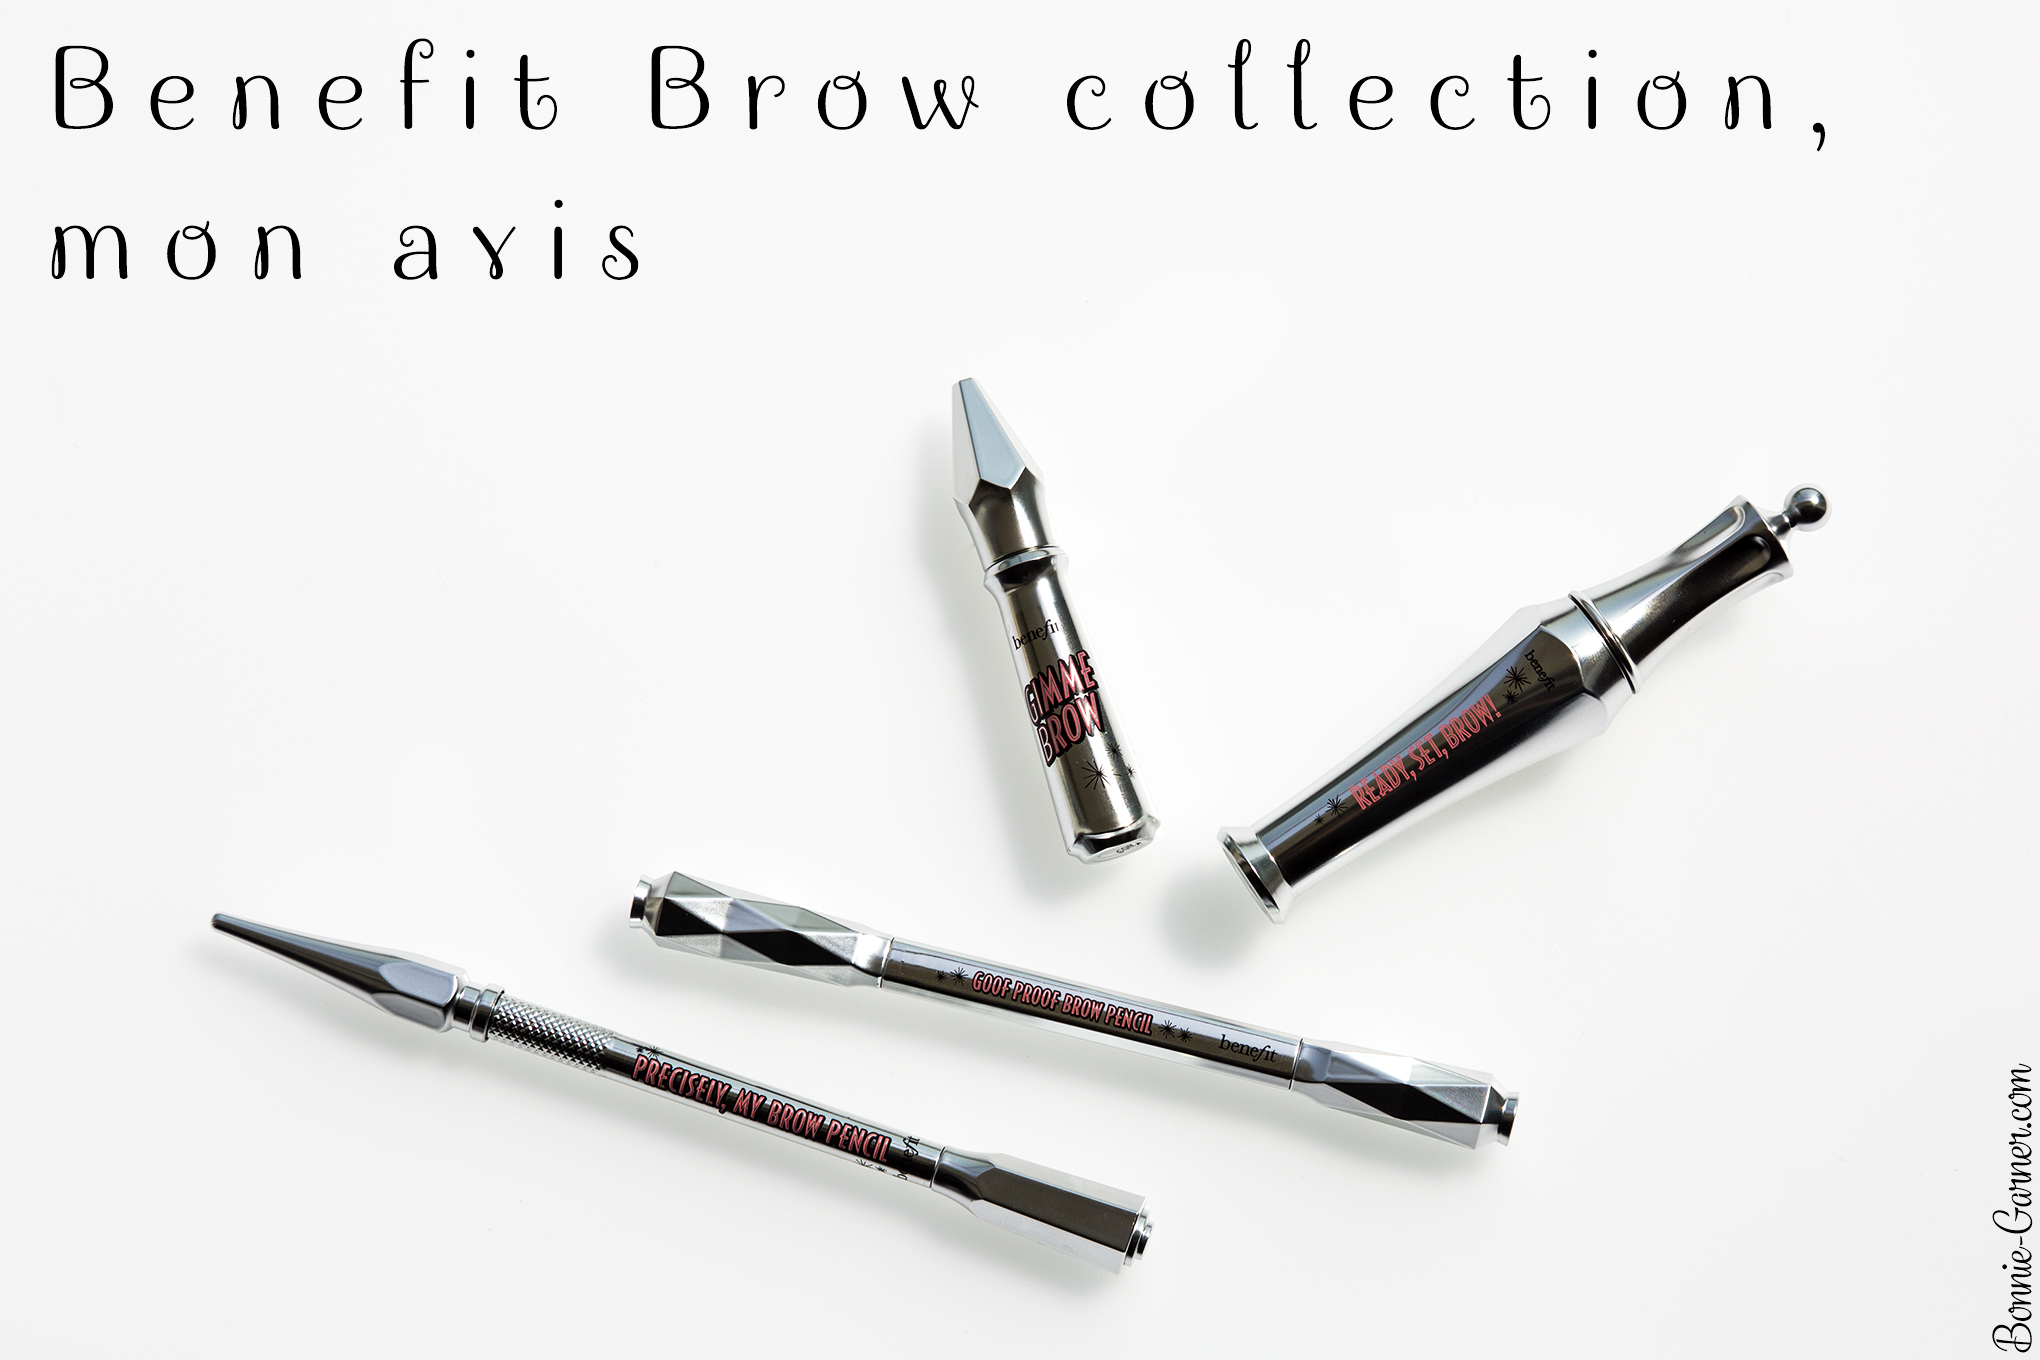 Benefit Brow collection, mon avis